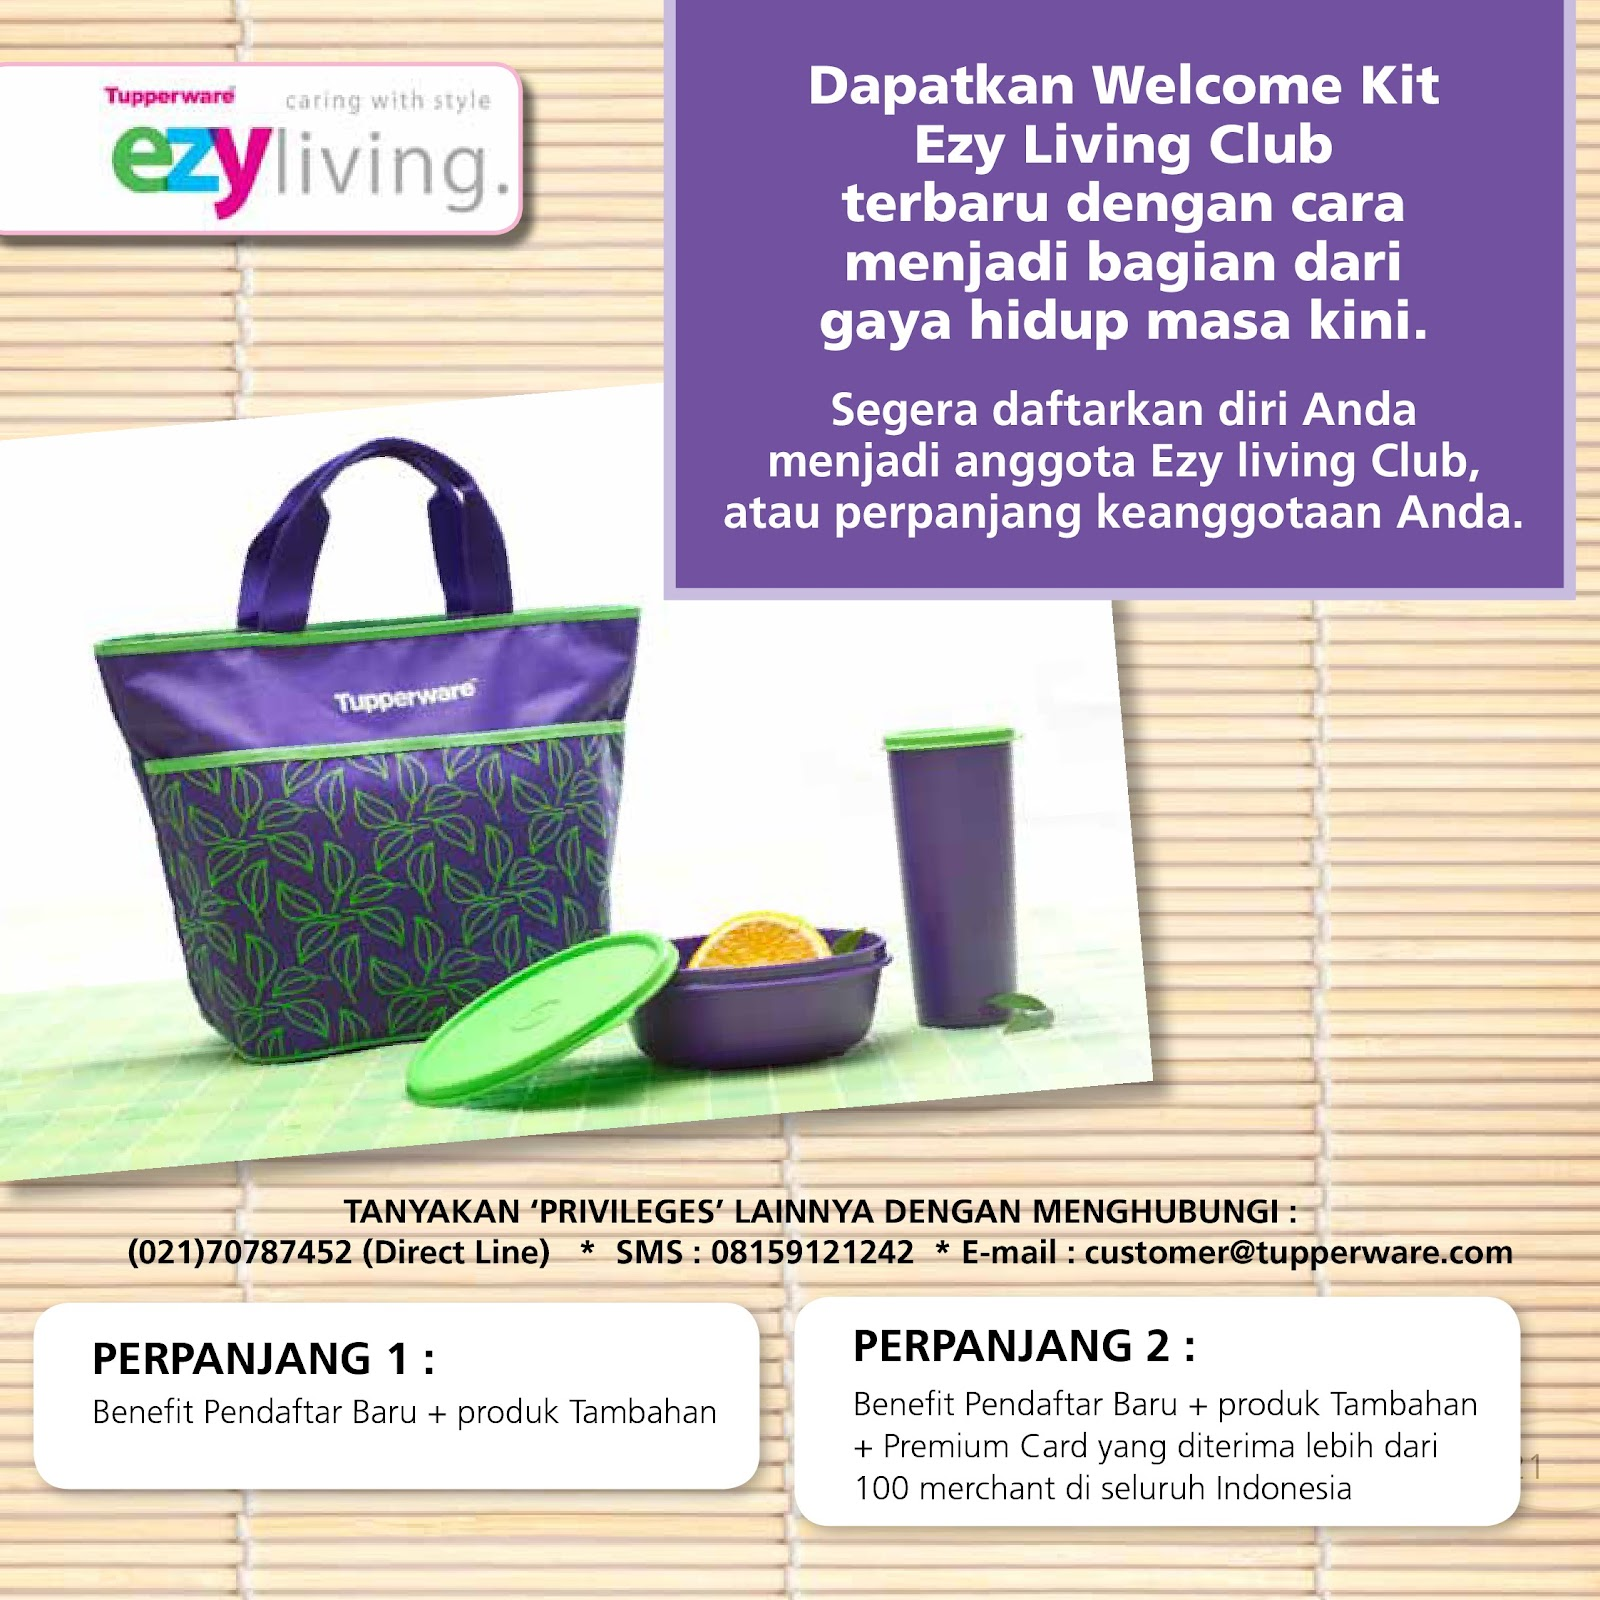 Katalog Tupperware Promo April 2013 (Kalimantan & Sumatera